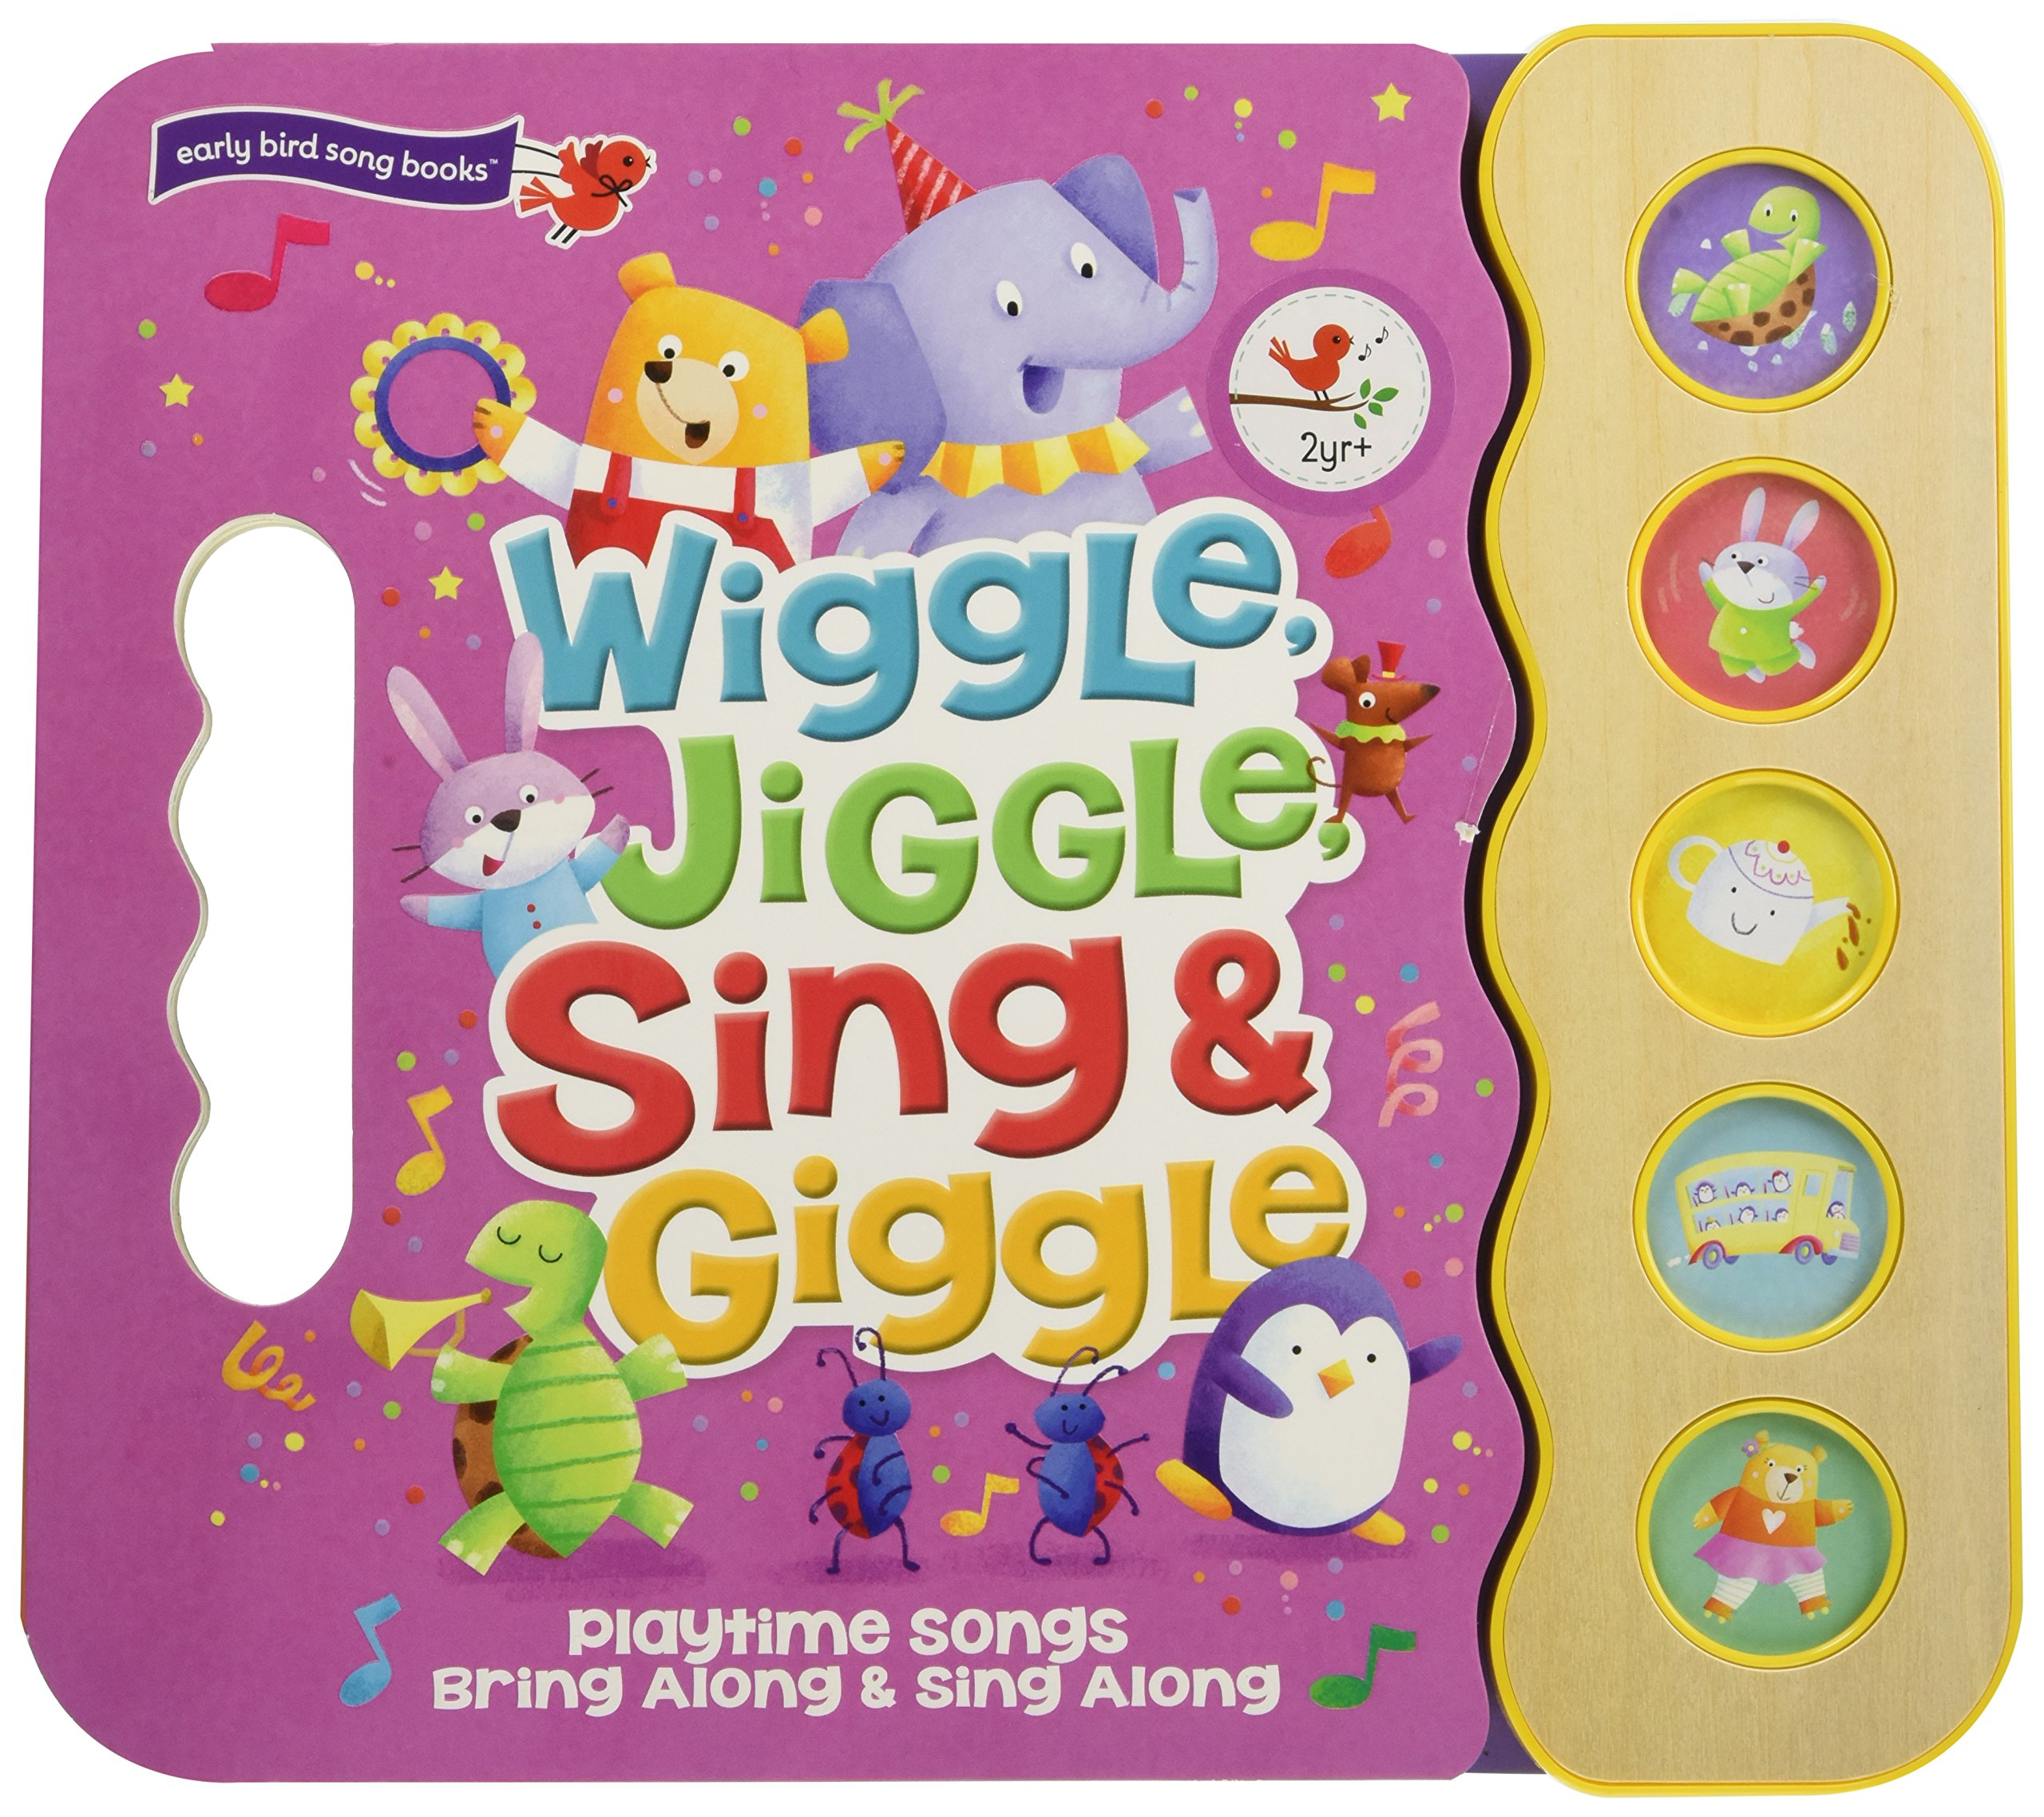 Wiggle, Jiggle, Sing & Giggle: Children's Sound Book (5 Button Sound) by Cottage Door Press (Image #1)